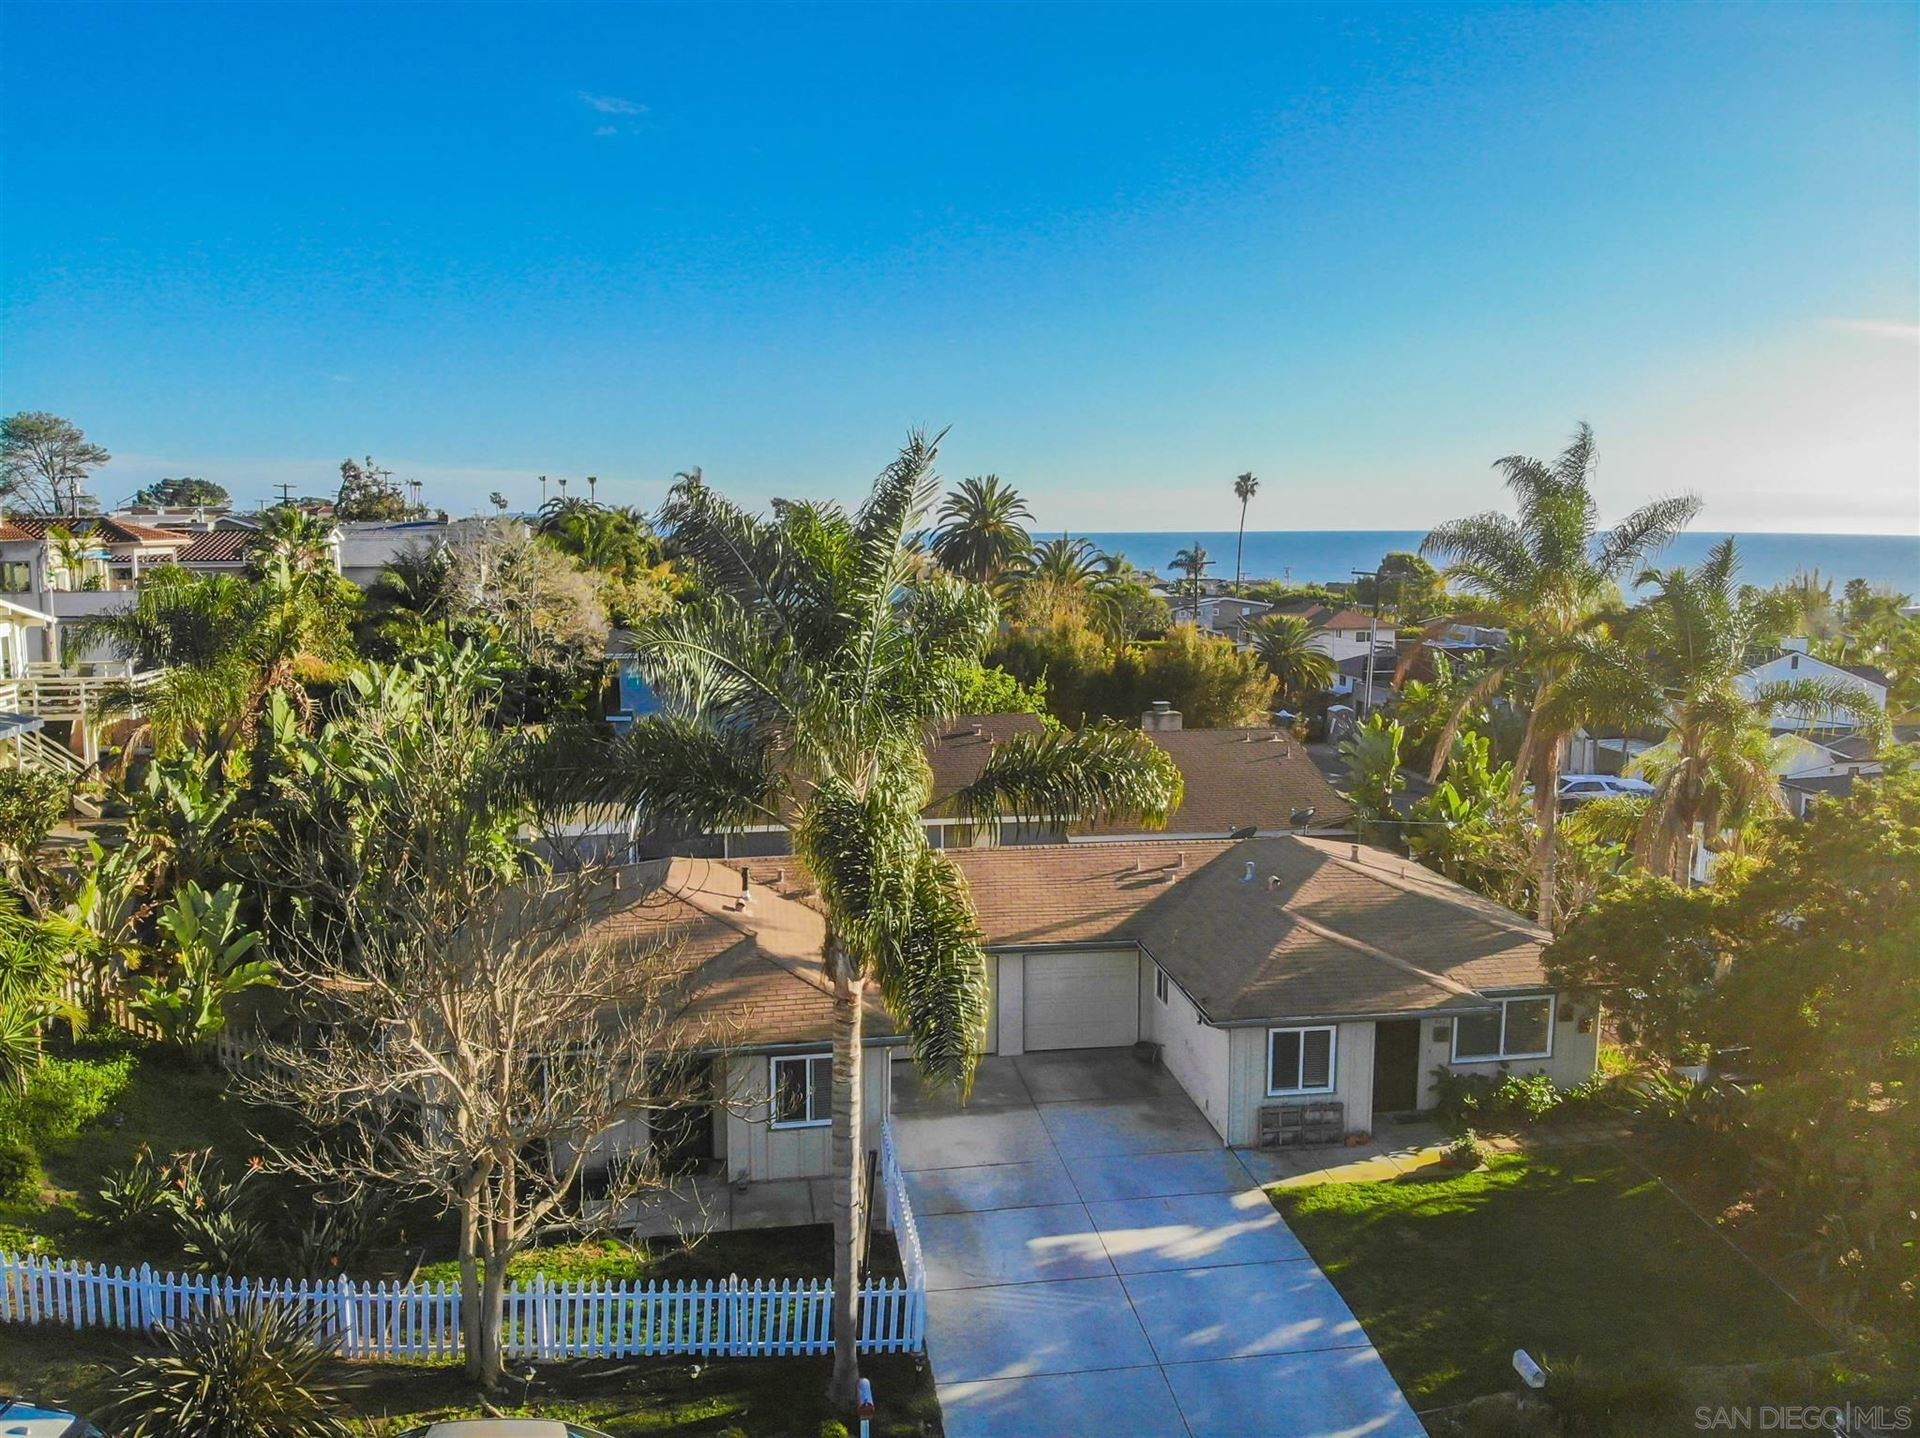 Photo of 647-649 Burkshire Ave, Cardiff By The Sea, CA 92007 (MLS # 210007396)